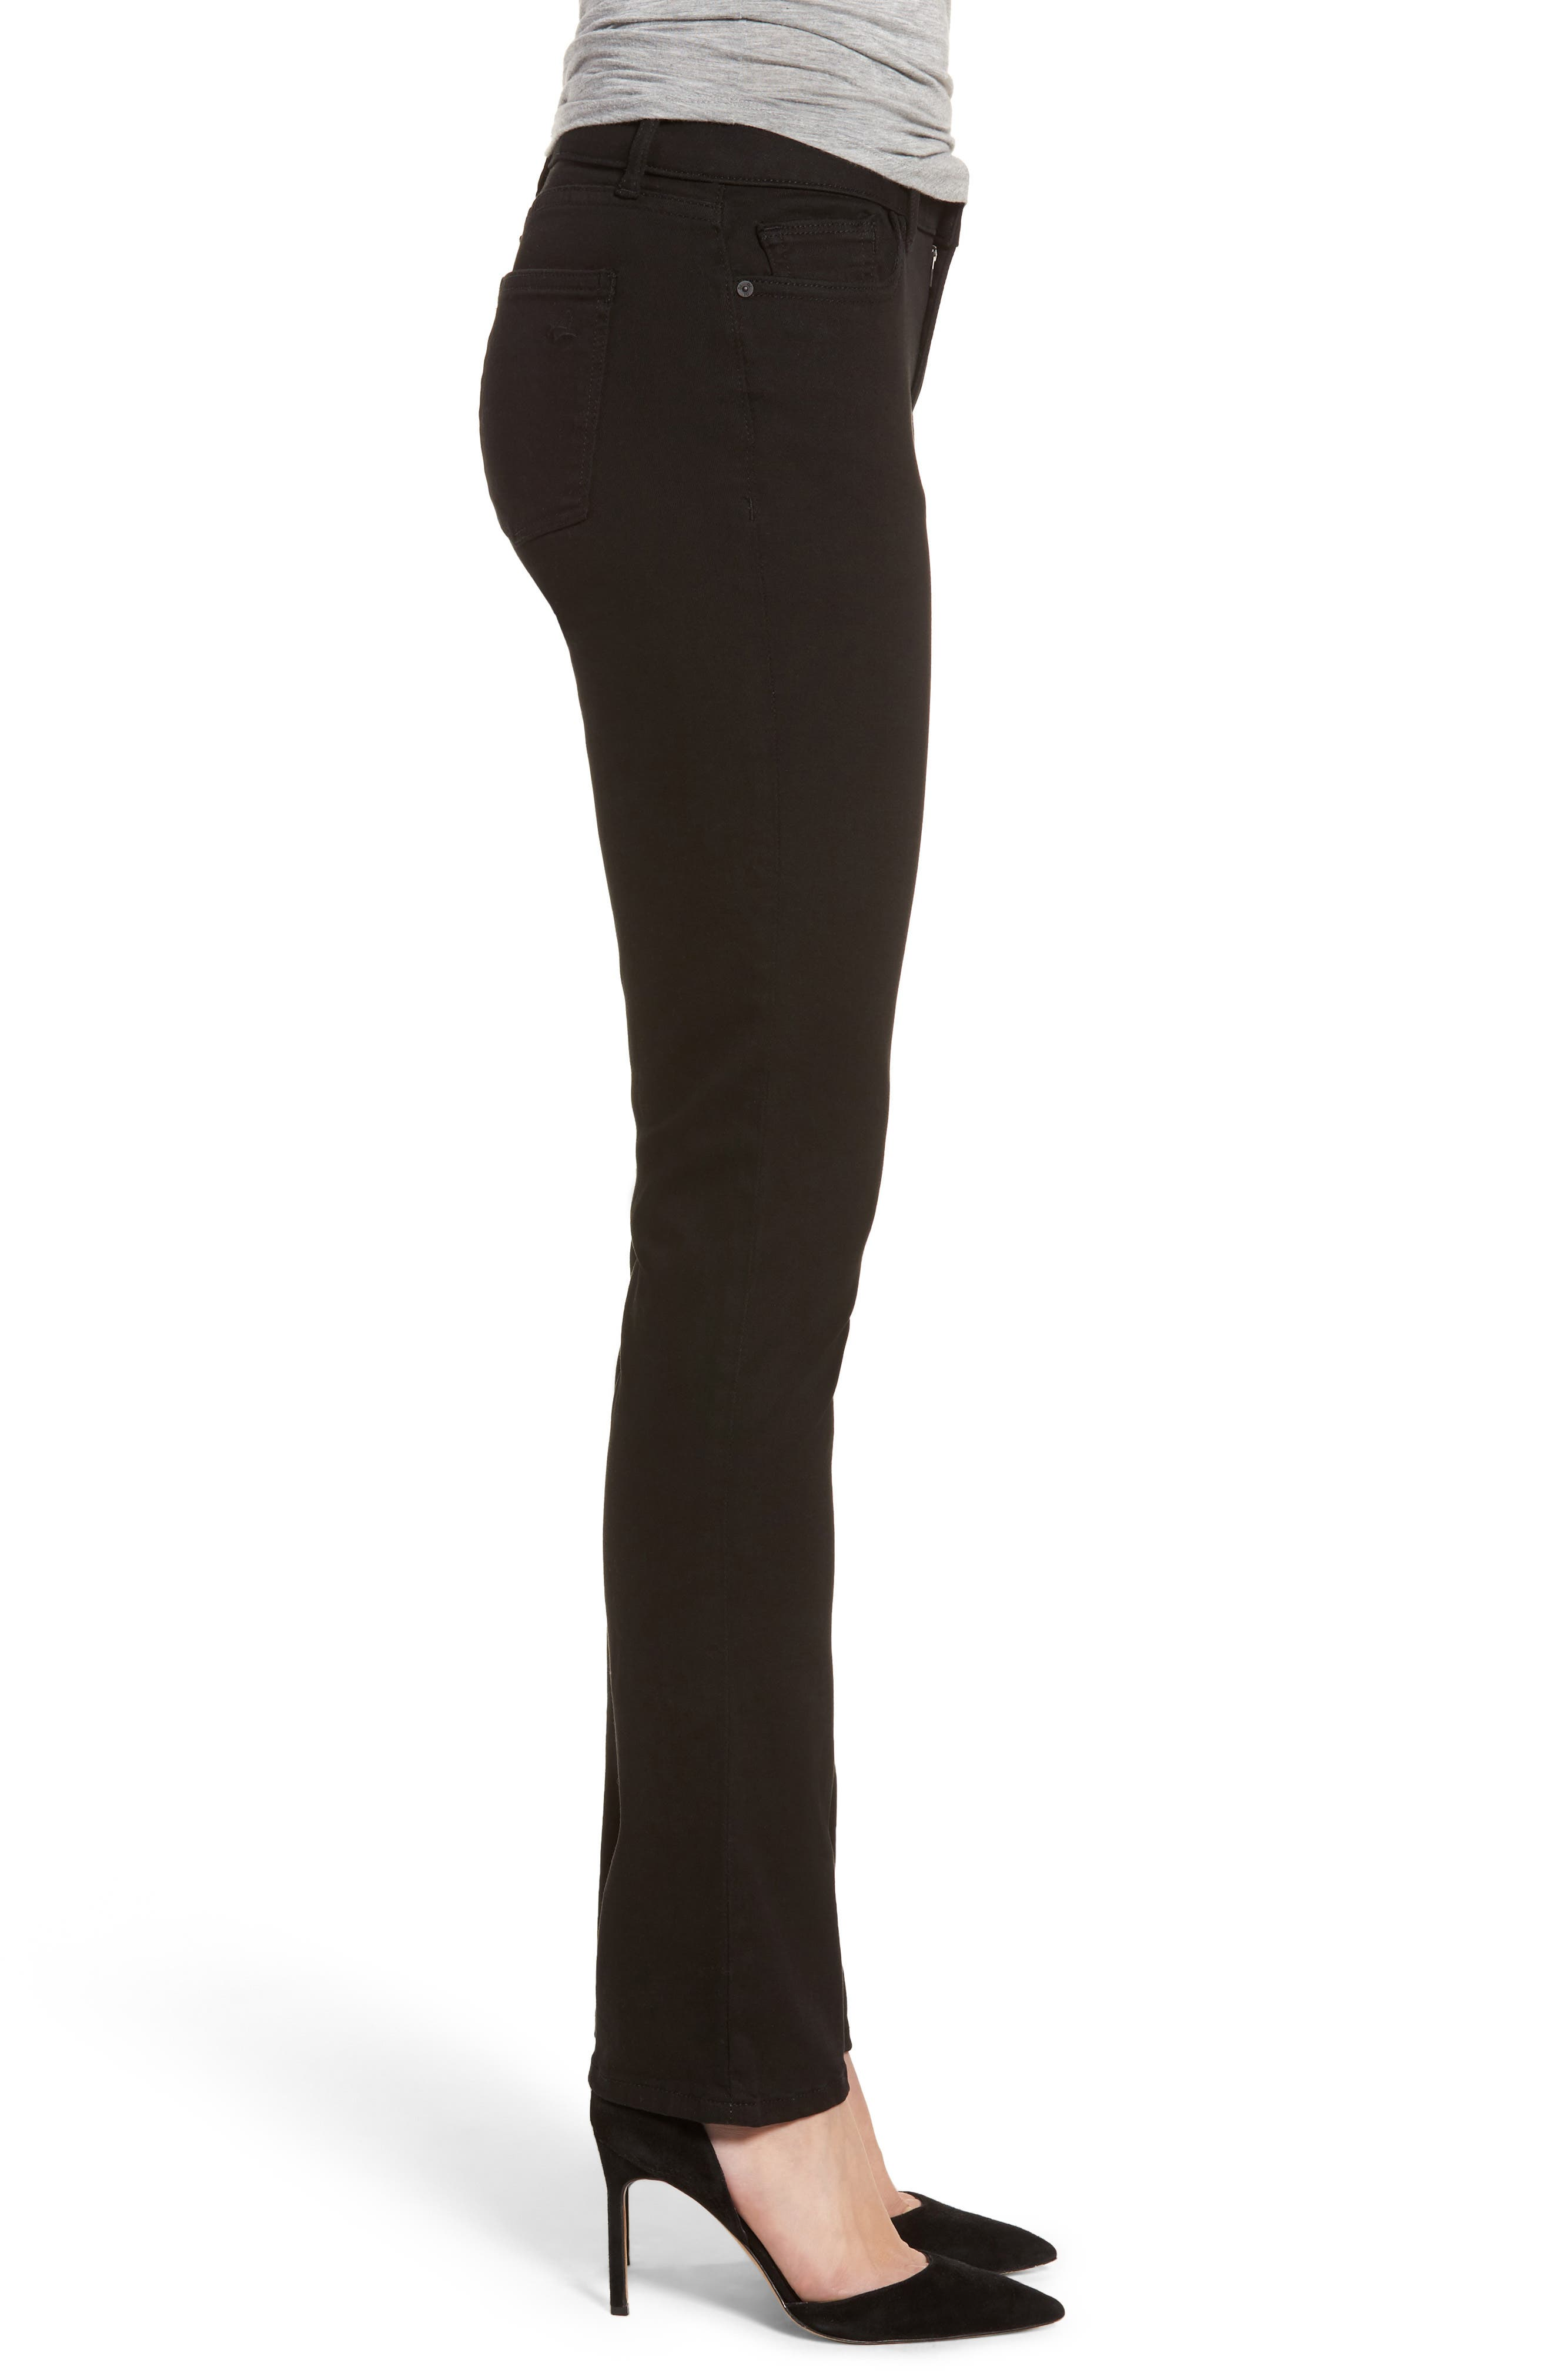 Coco Curvy Straight Leg Jeans,                             Alternate thumbnail 3, color,                             Hail